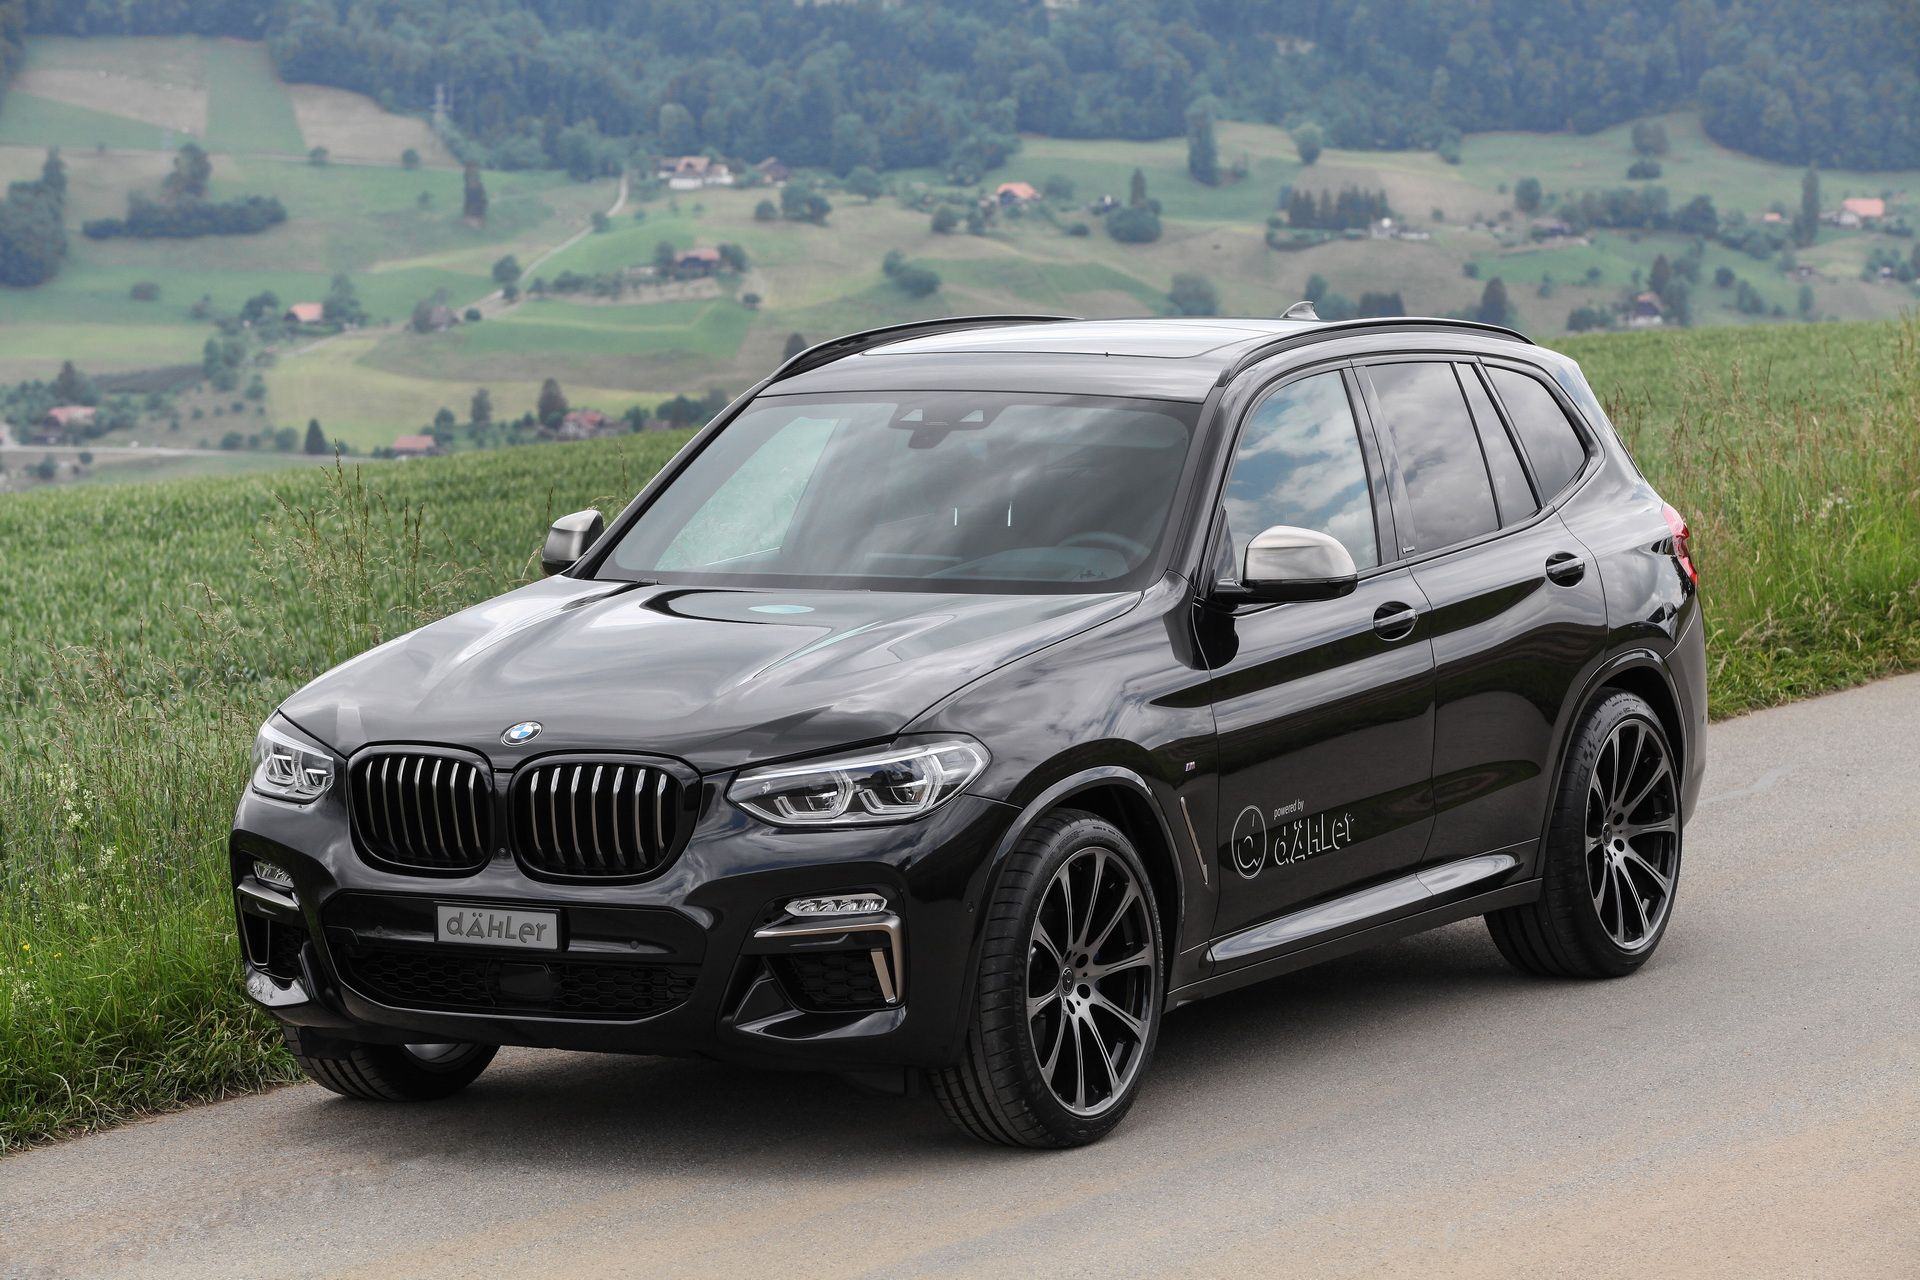 Dahler Bmw X3 M40i Has 420 Ps And A Blacked Out Theme